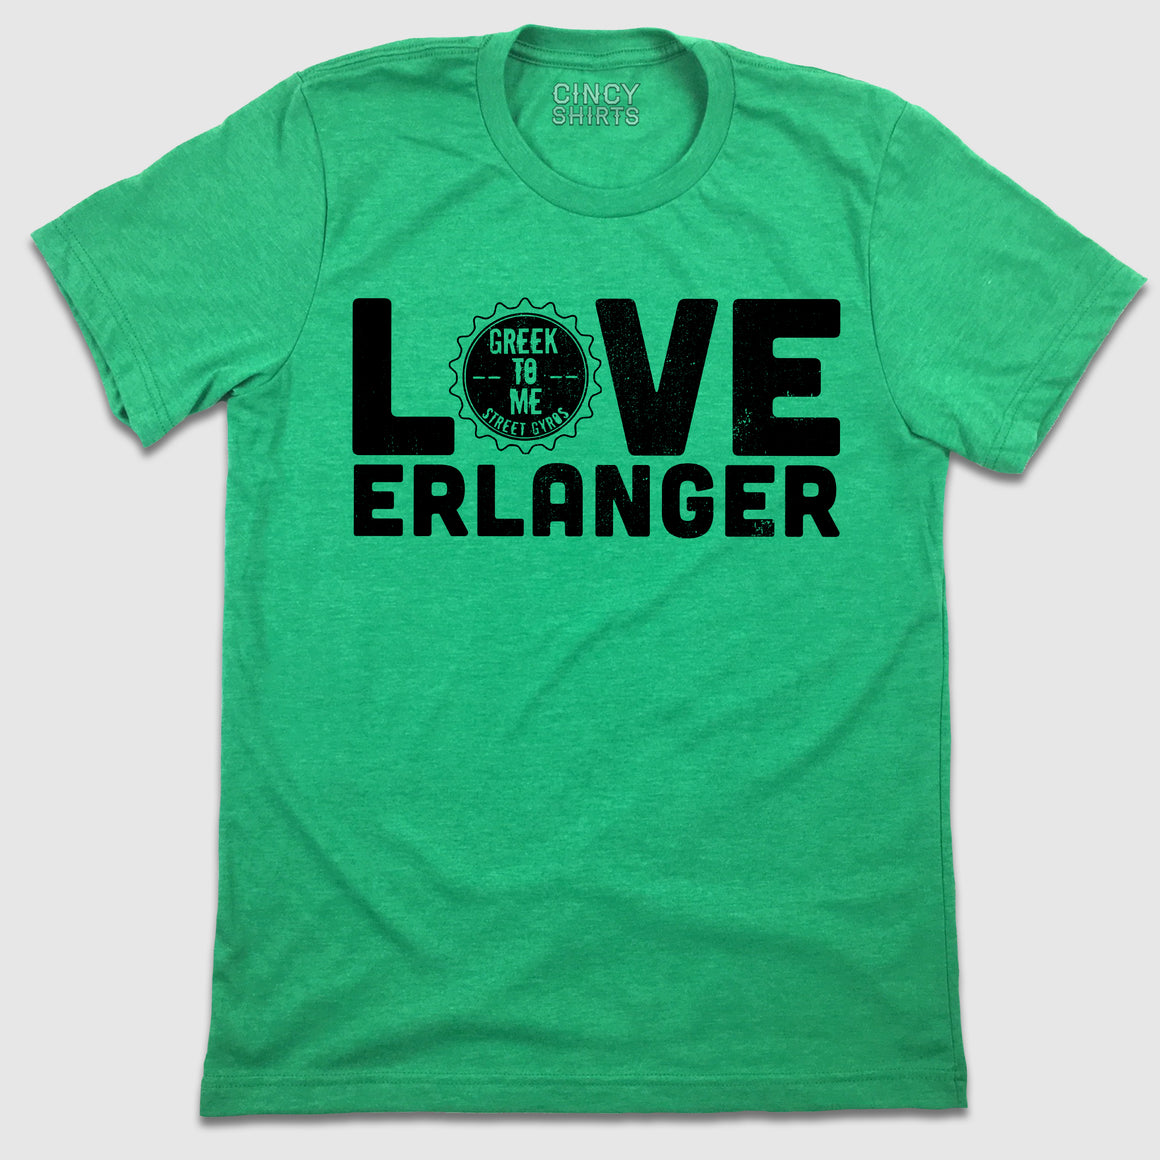 Love Erlanger - Greek To Me